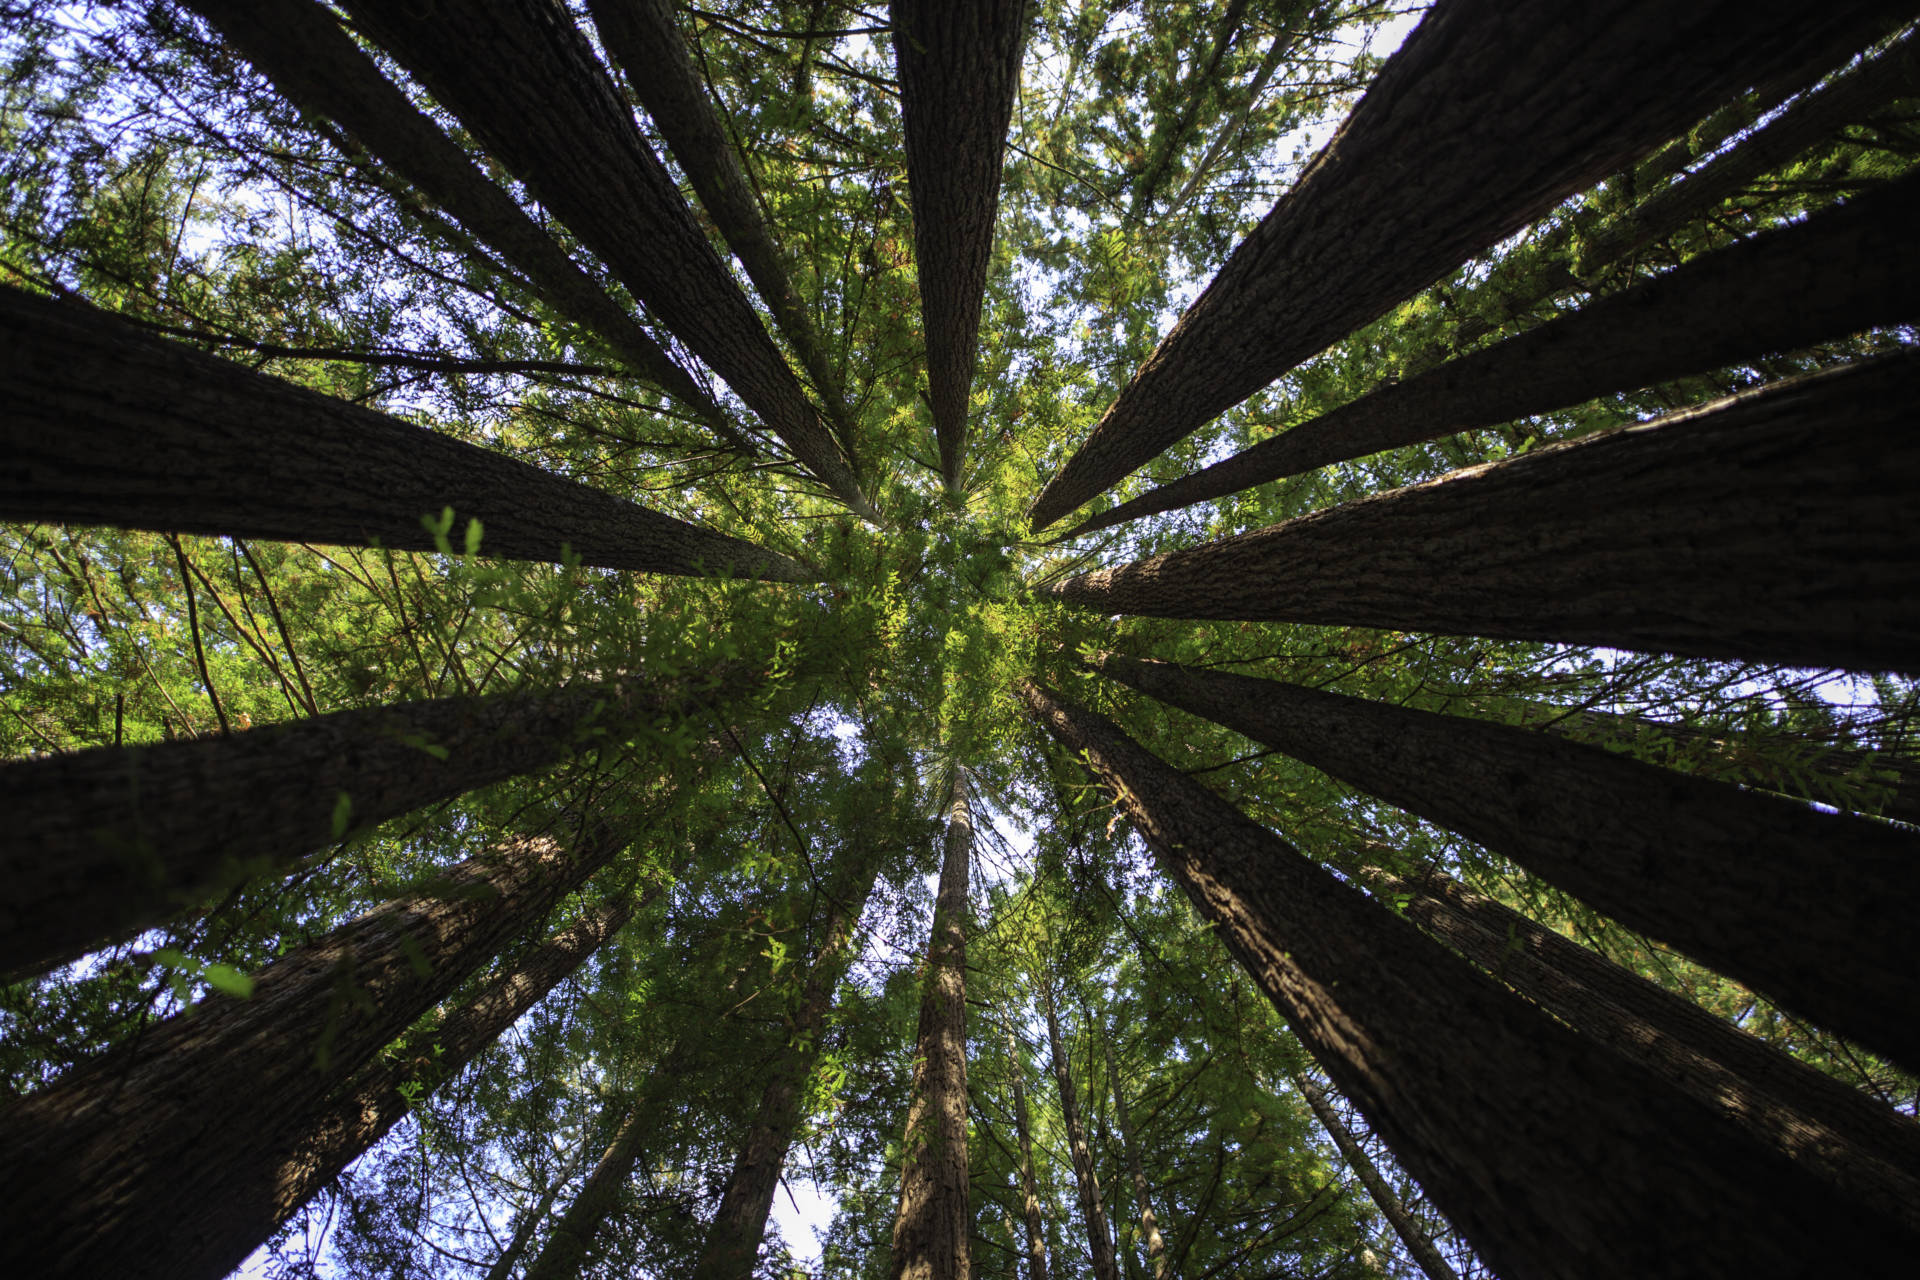 A picture taken in the middle of a circle of sequoia trees, looking up. iStock